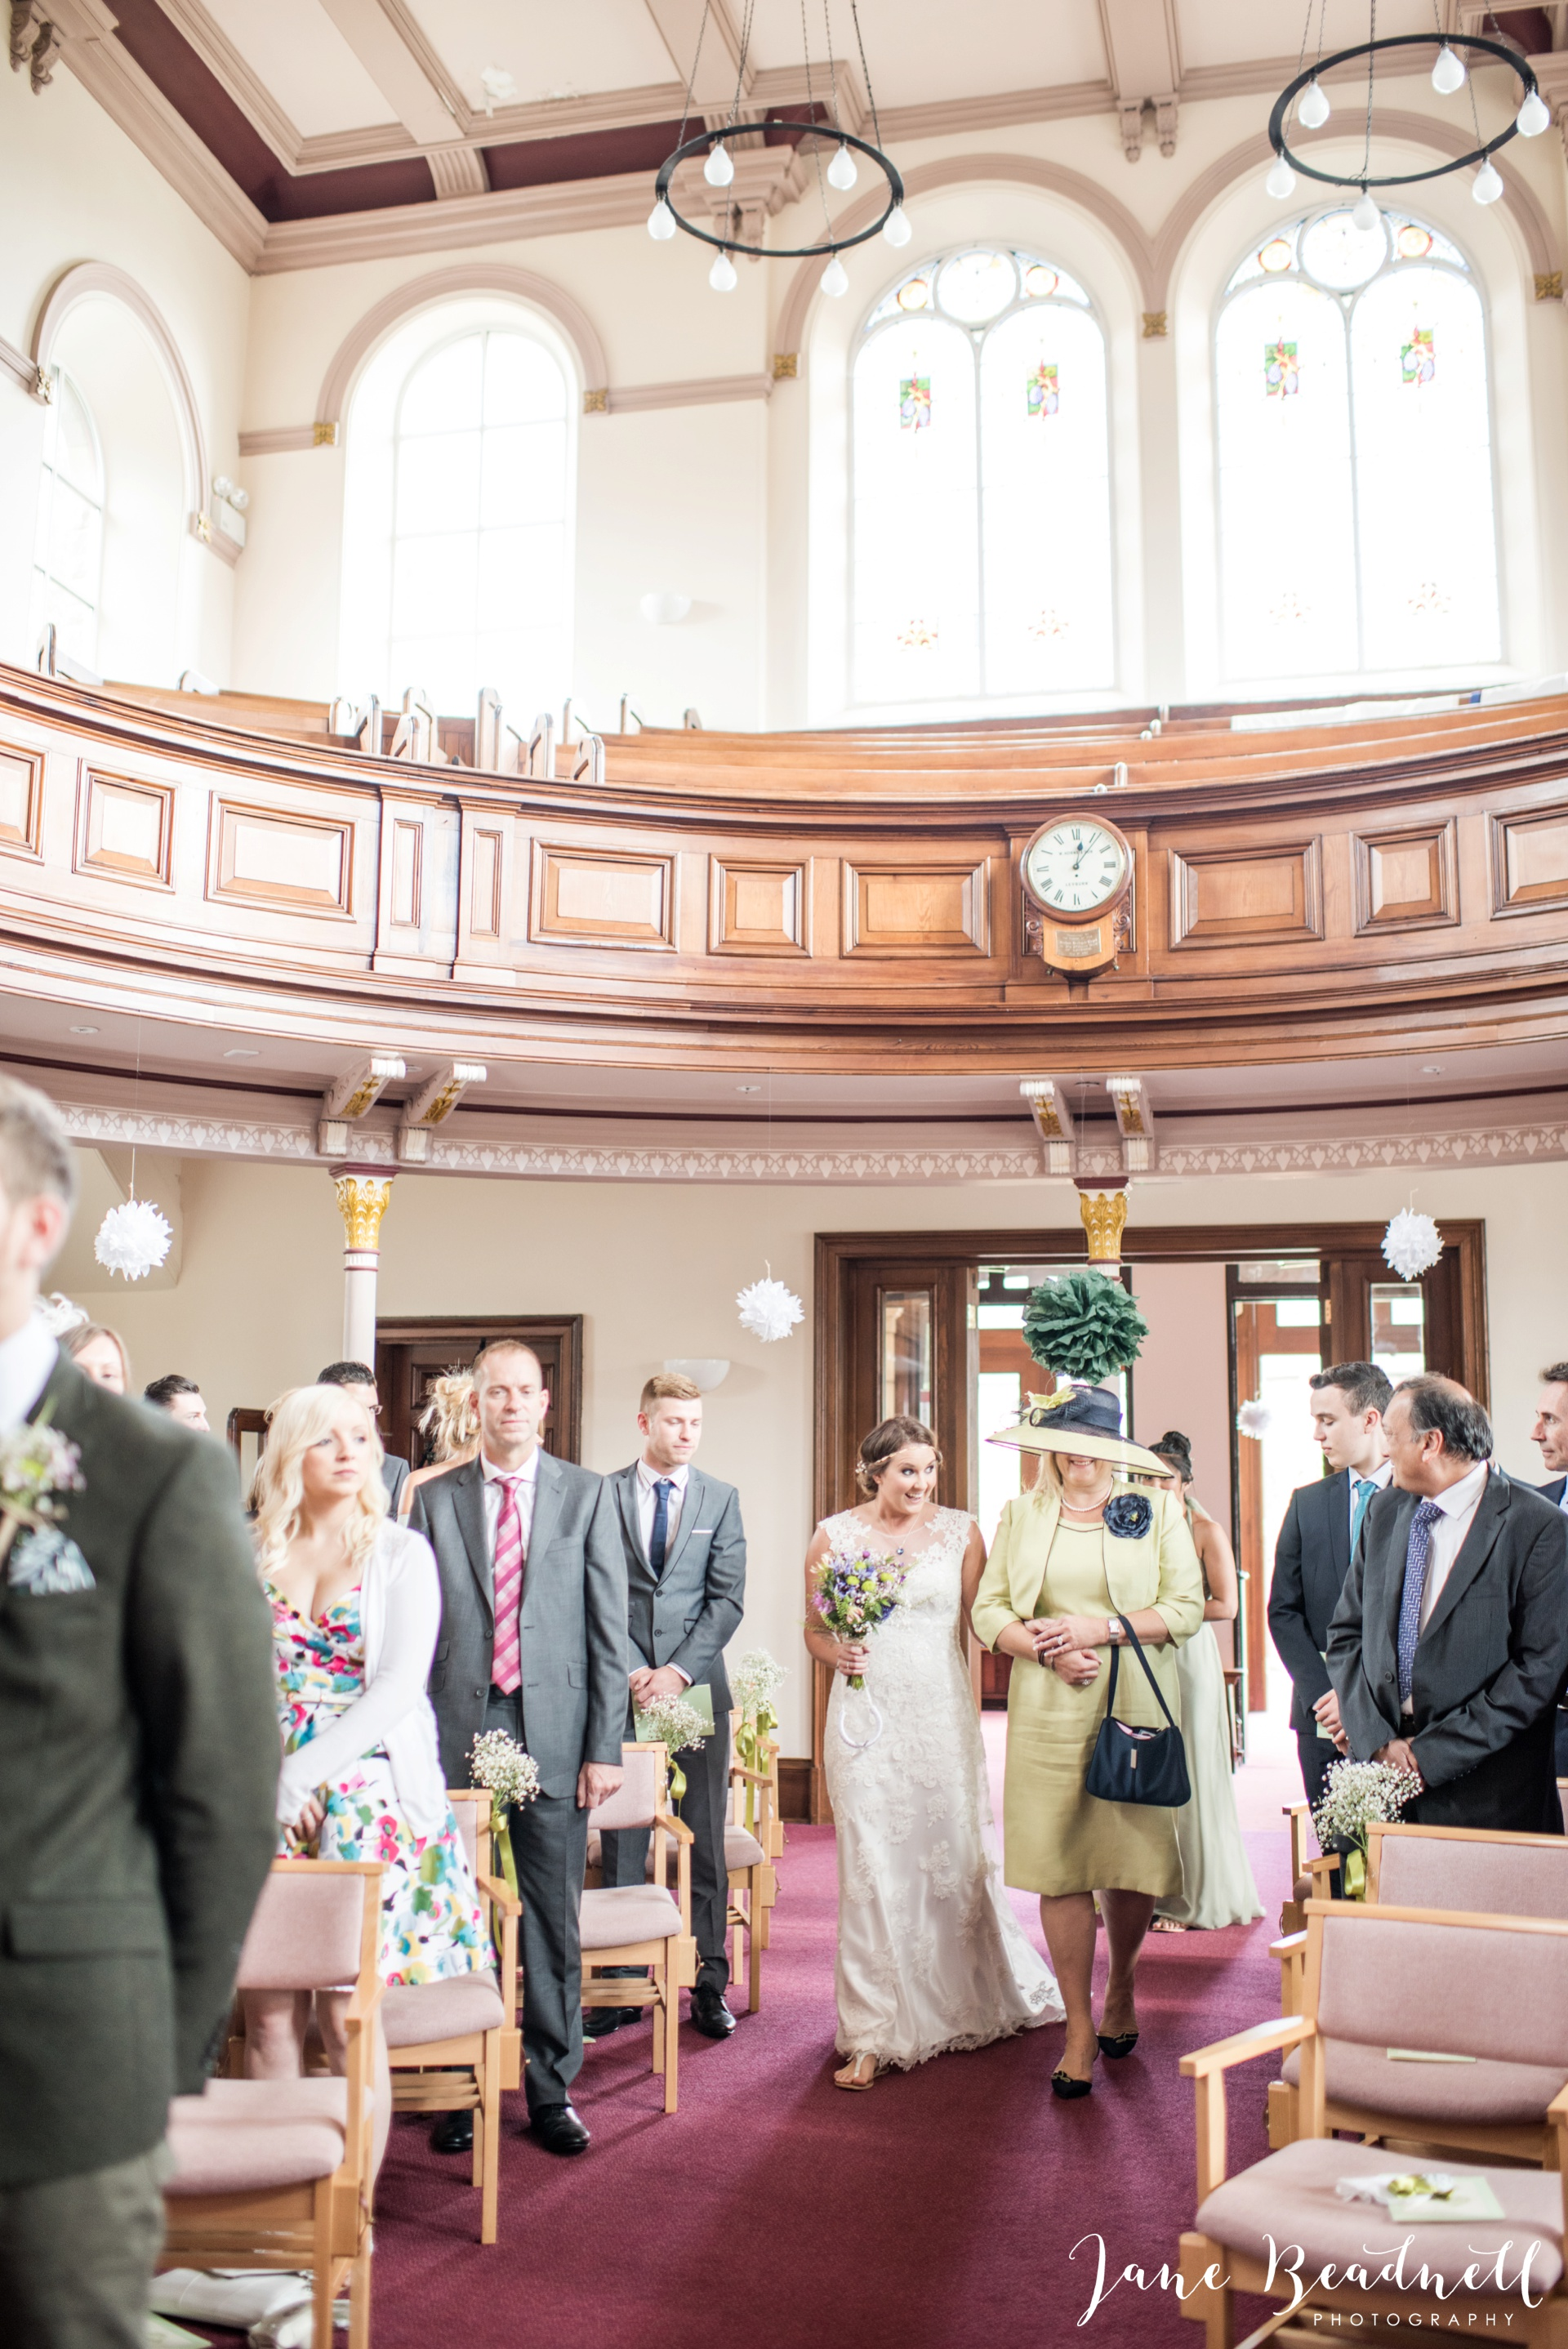 Jane Beadnell fine art wedding photographer The Old Deanery Ripon_0024